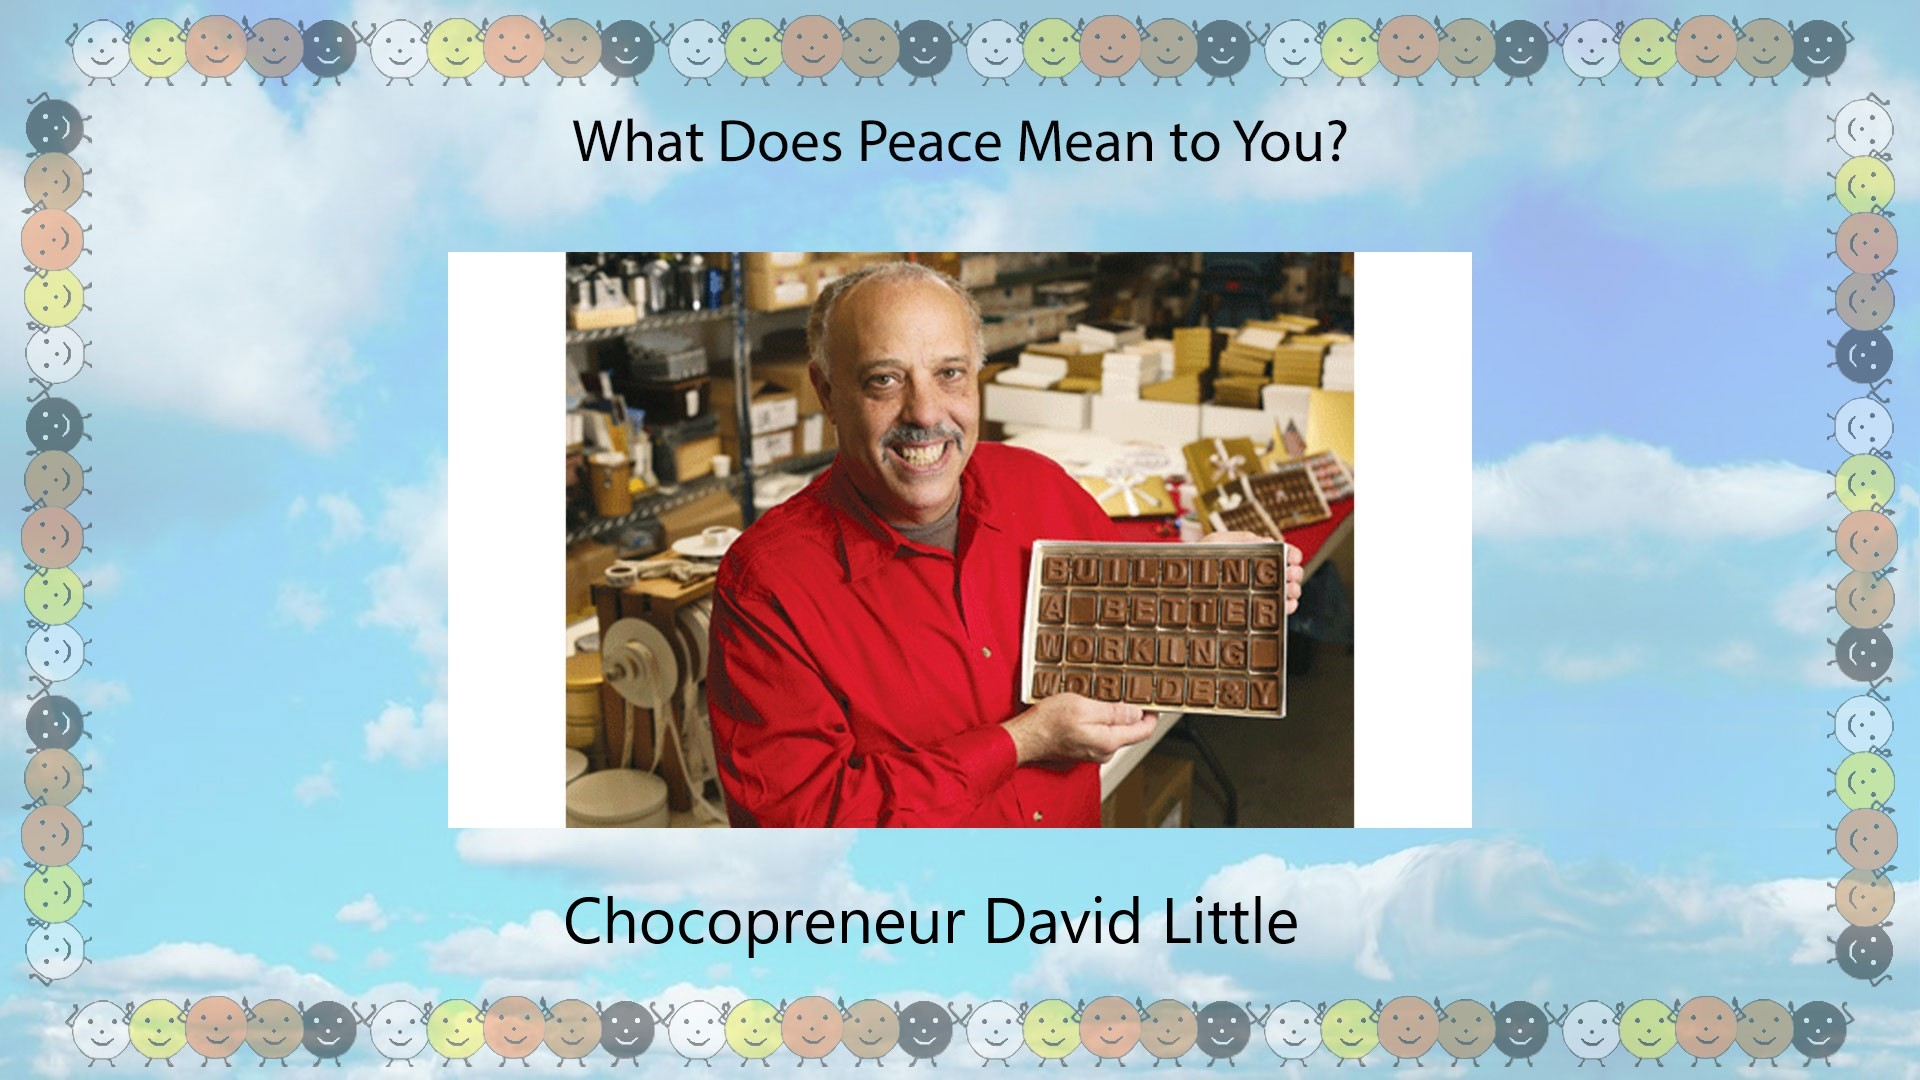 What's peace means for David little?